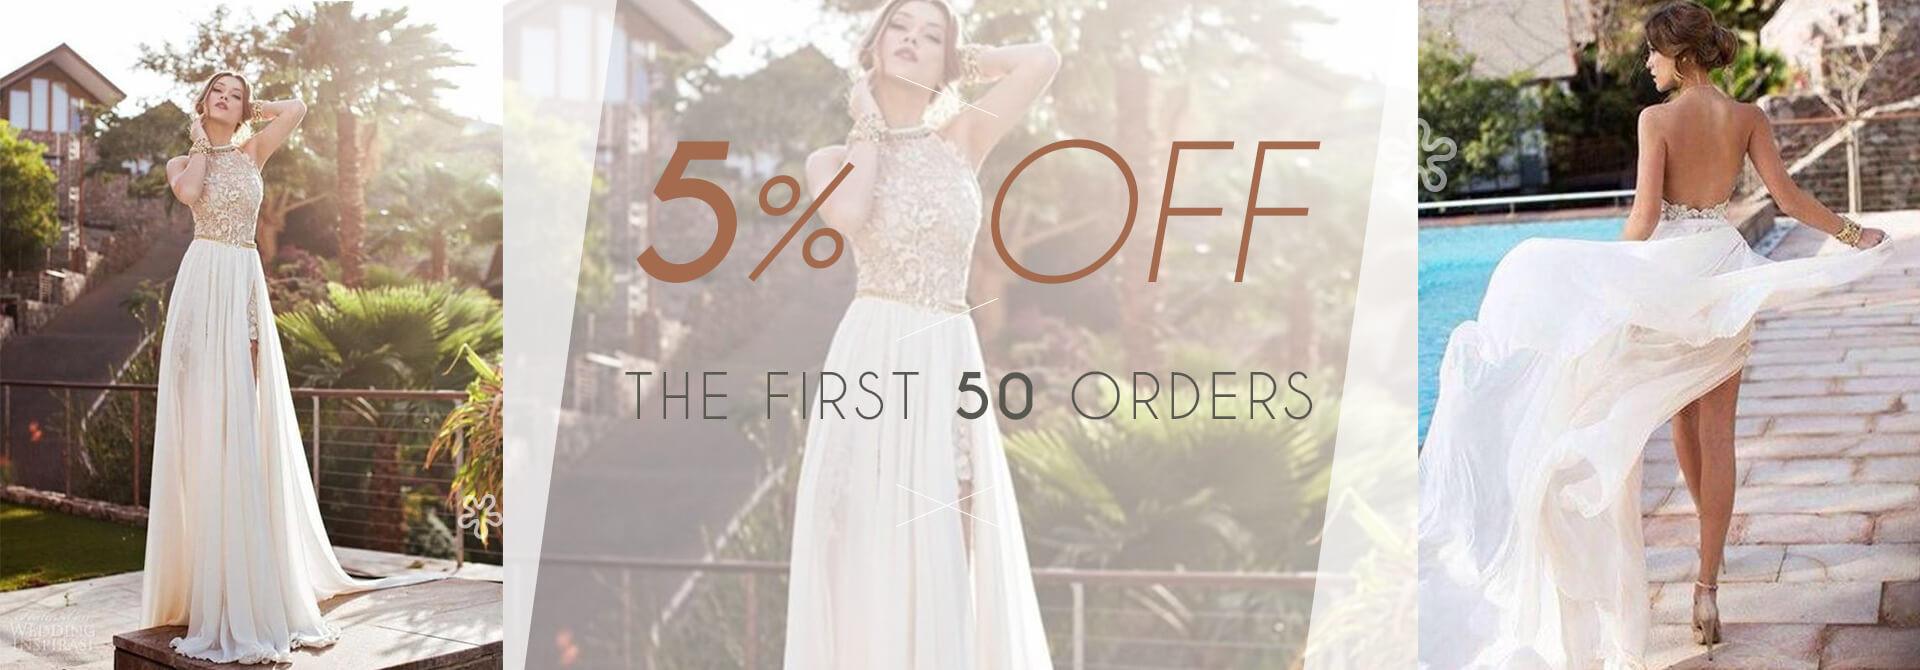 5% Off the First 50 Orders